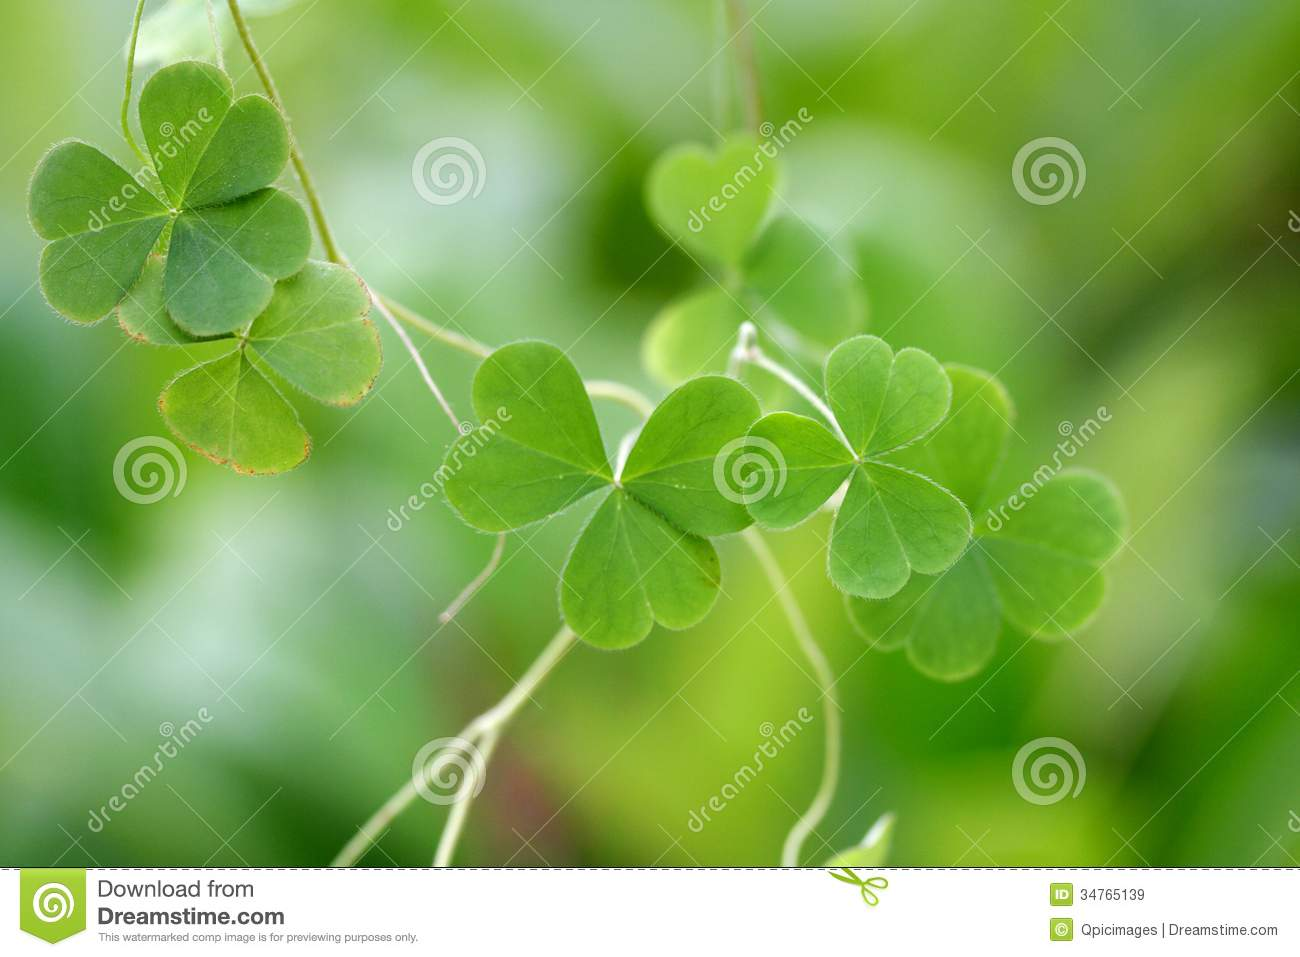 Shamrock Three Leaf Clover Stock Image Image Of Culture 34765139